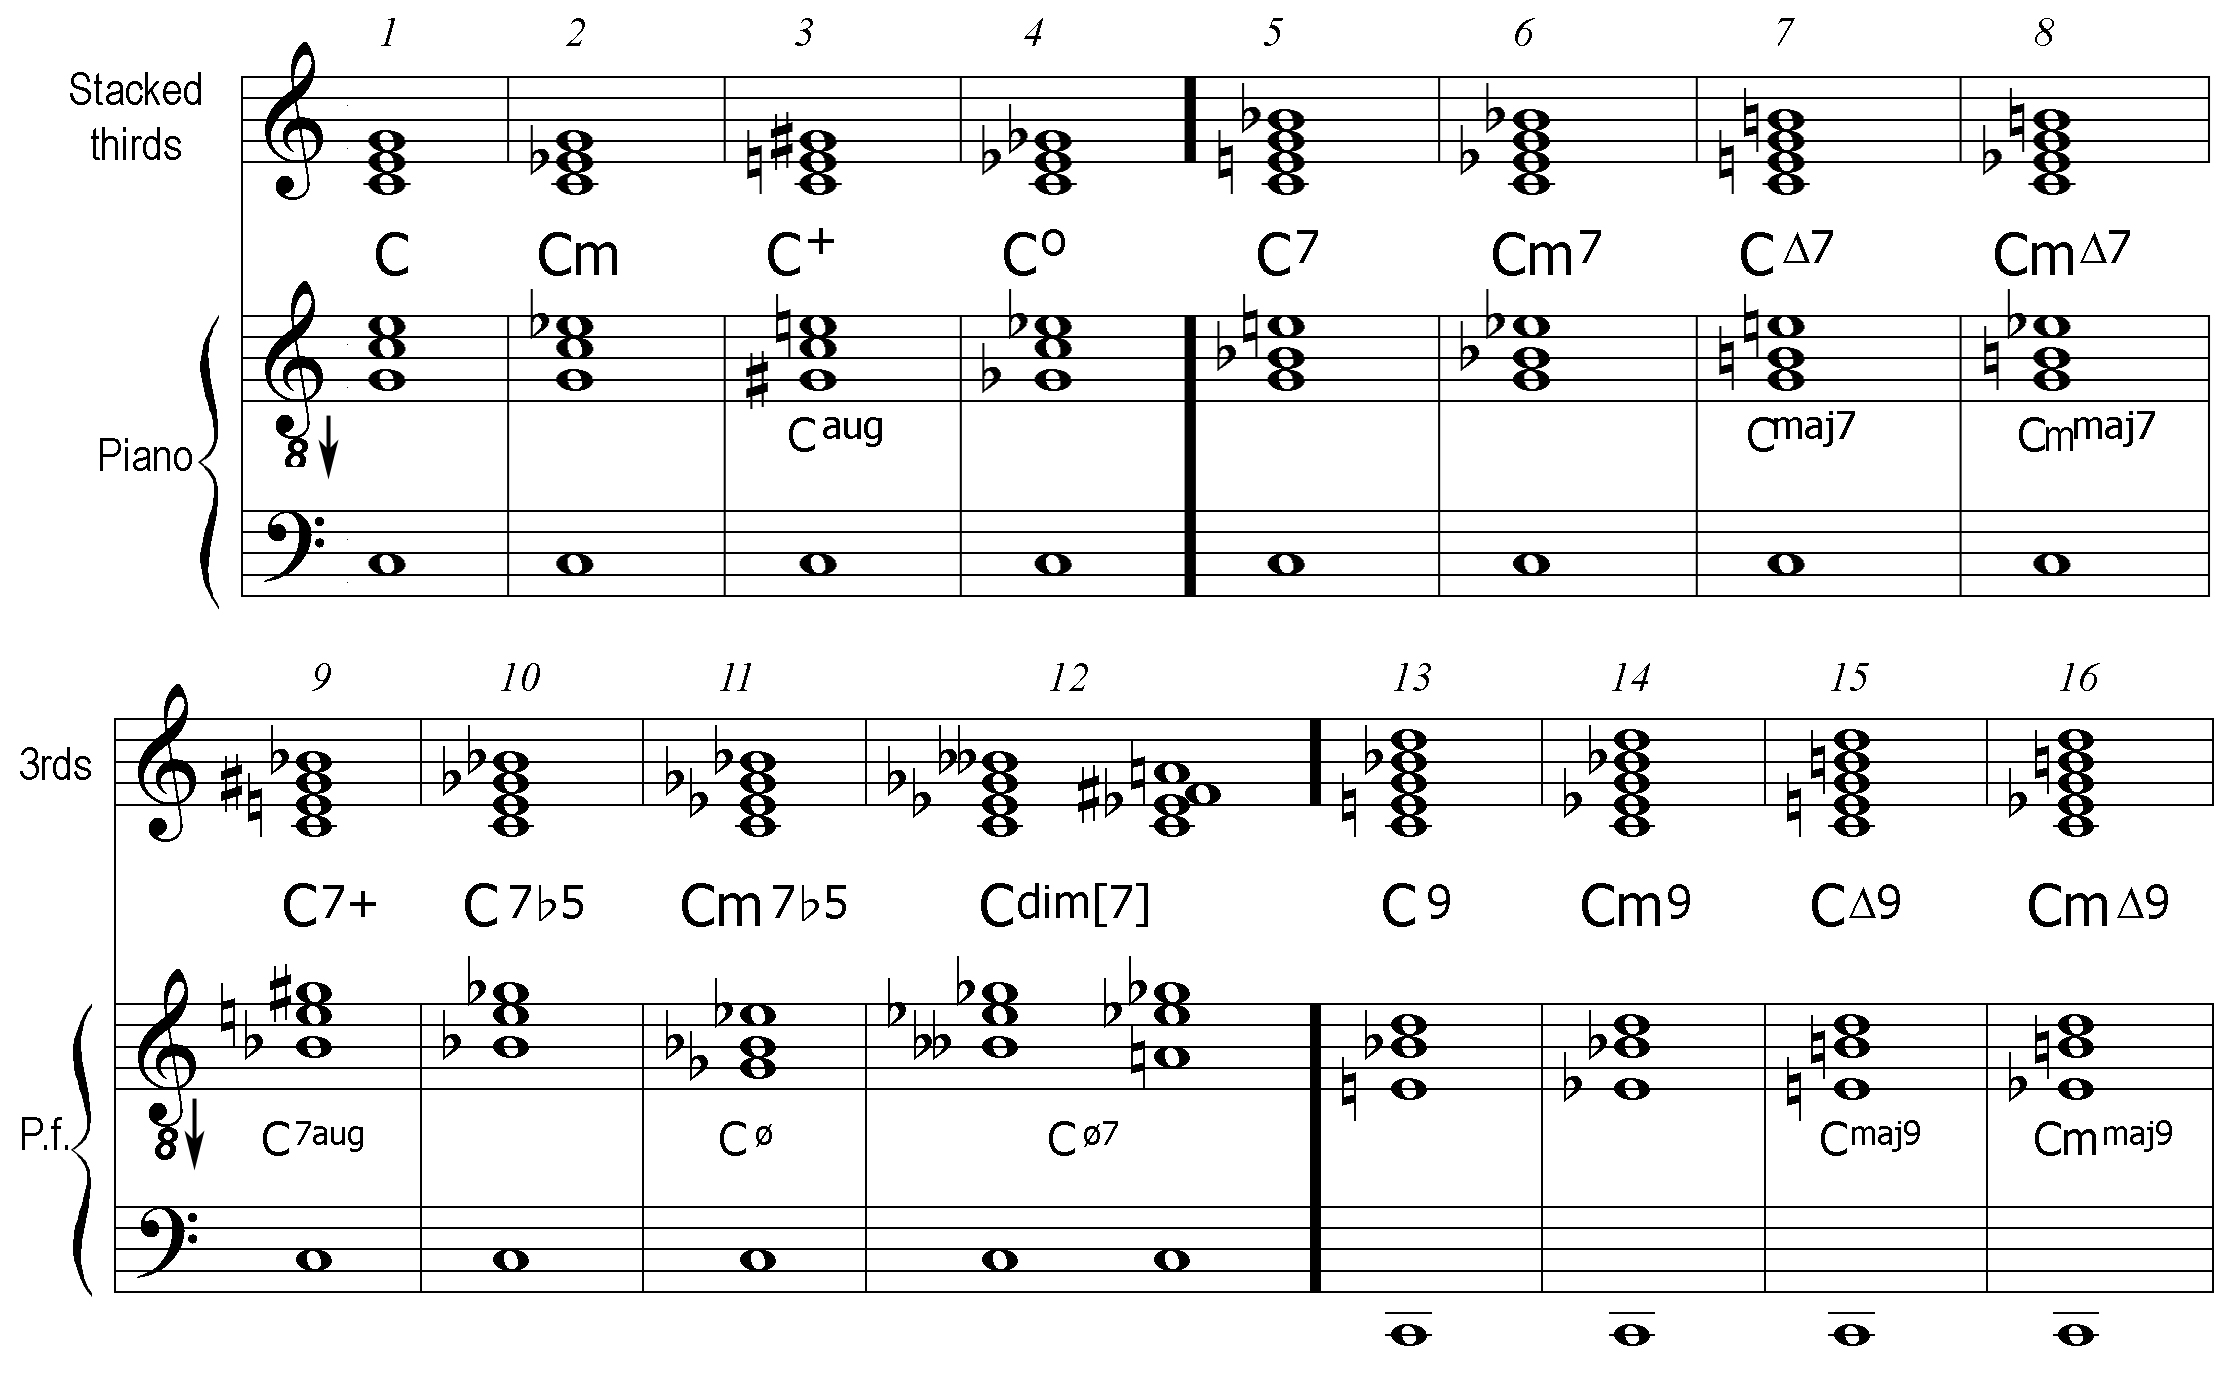 Notation How To Read Chord Diagrams Or Stamps Chart In C Major 1